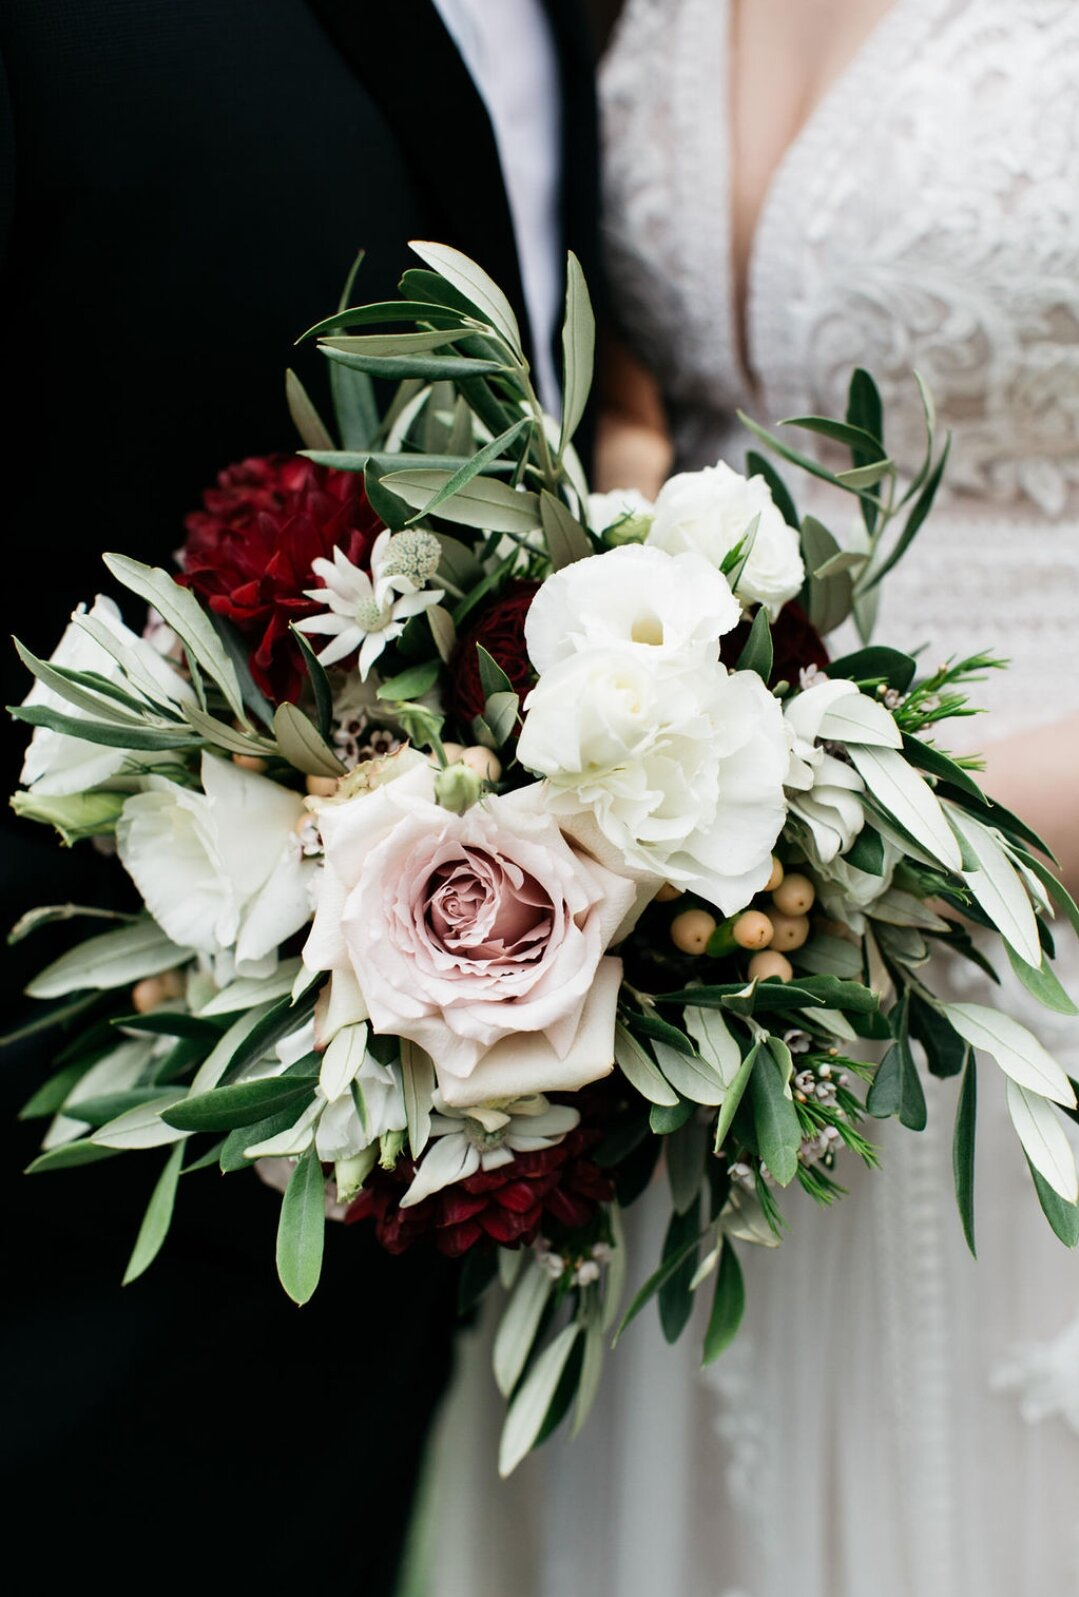 sydney-wedding-bridal-party-bride-flowers-blush-burgundy-prices-packages-affordable